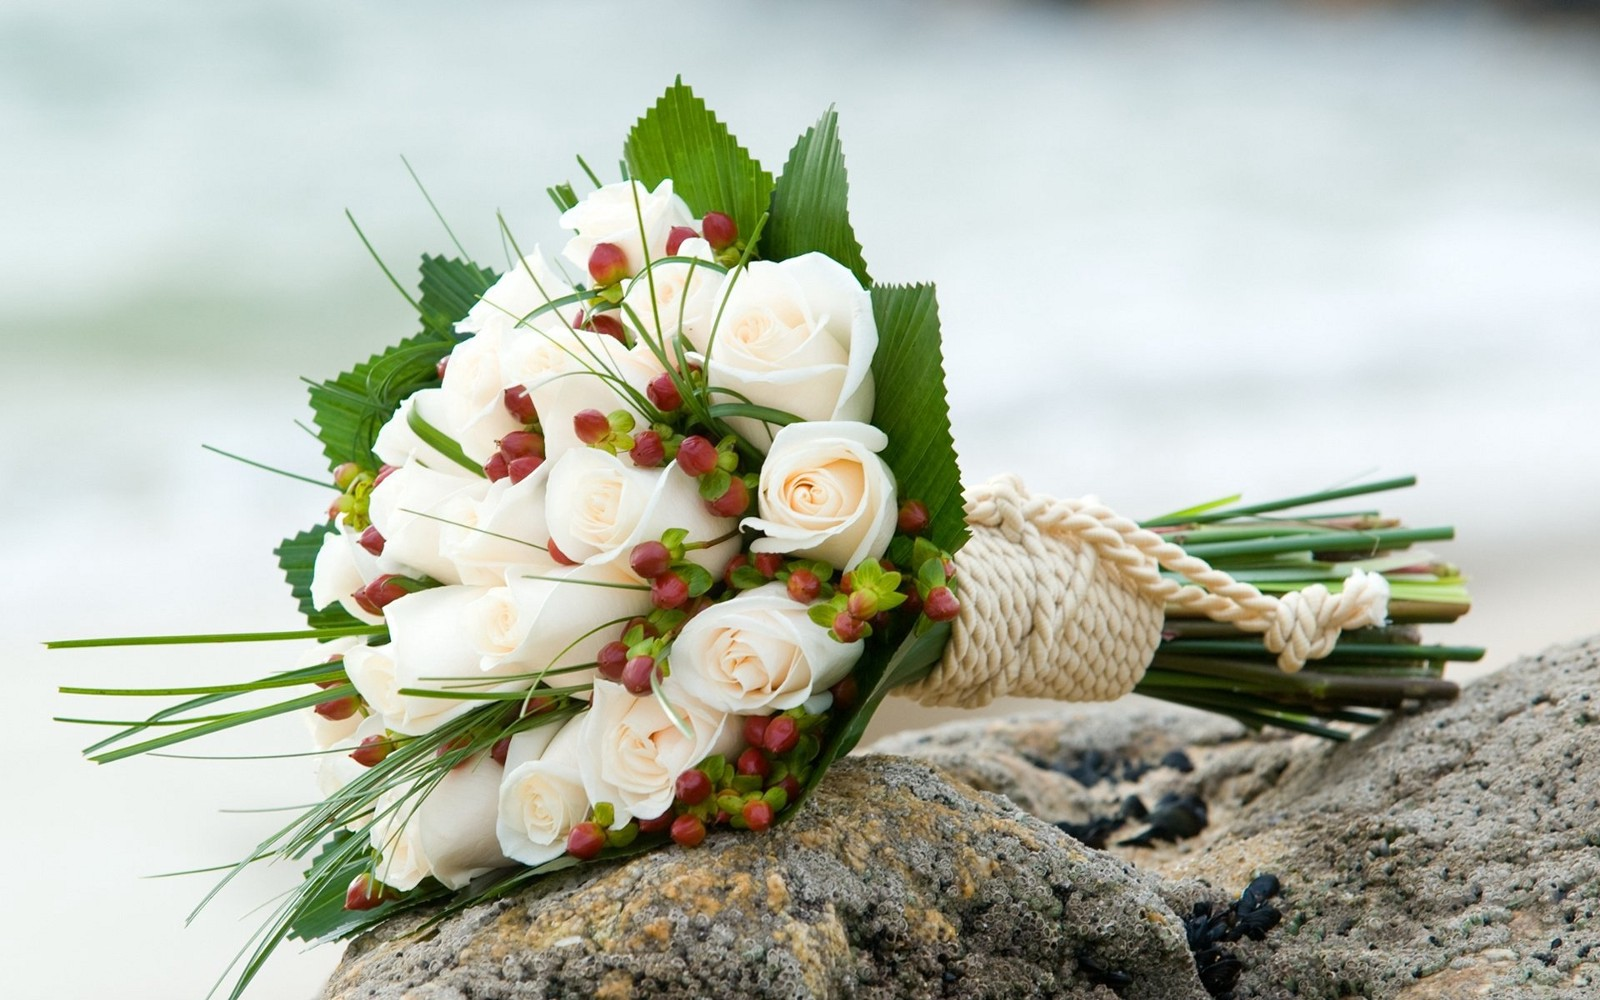 Funeral Flowers Various Types And Connotations They Carry